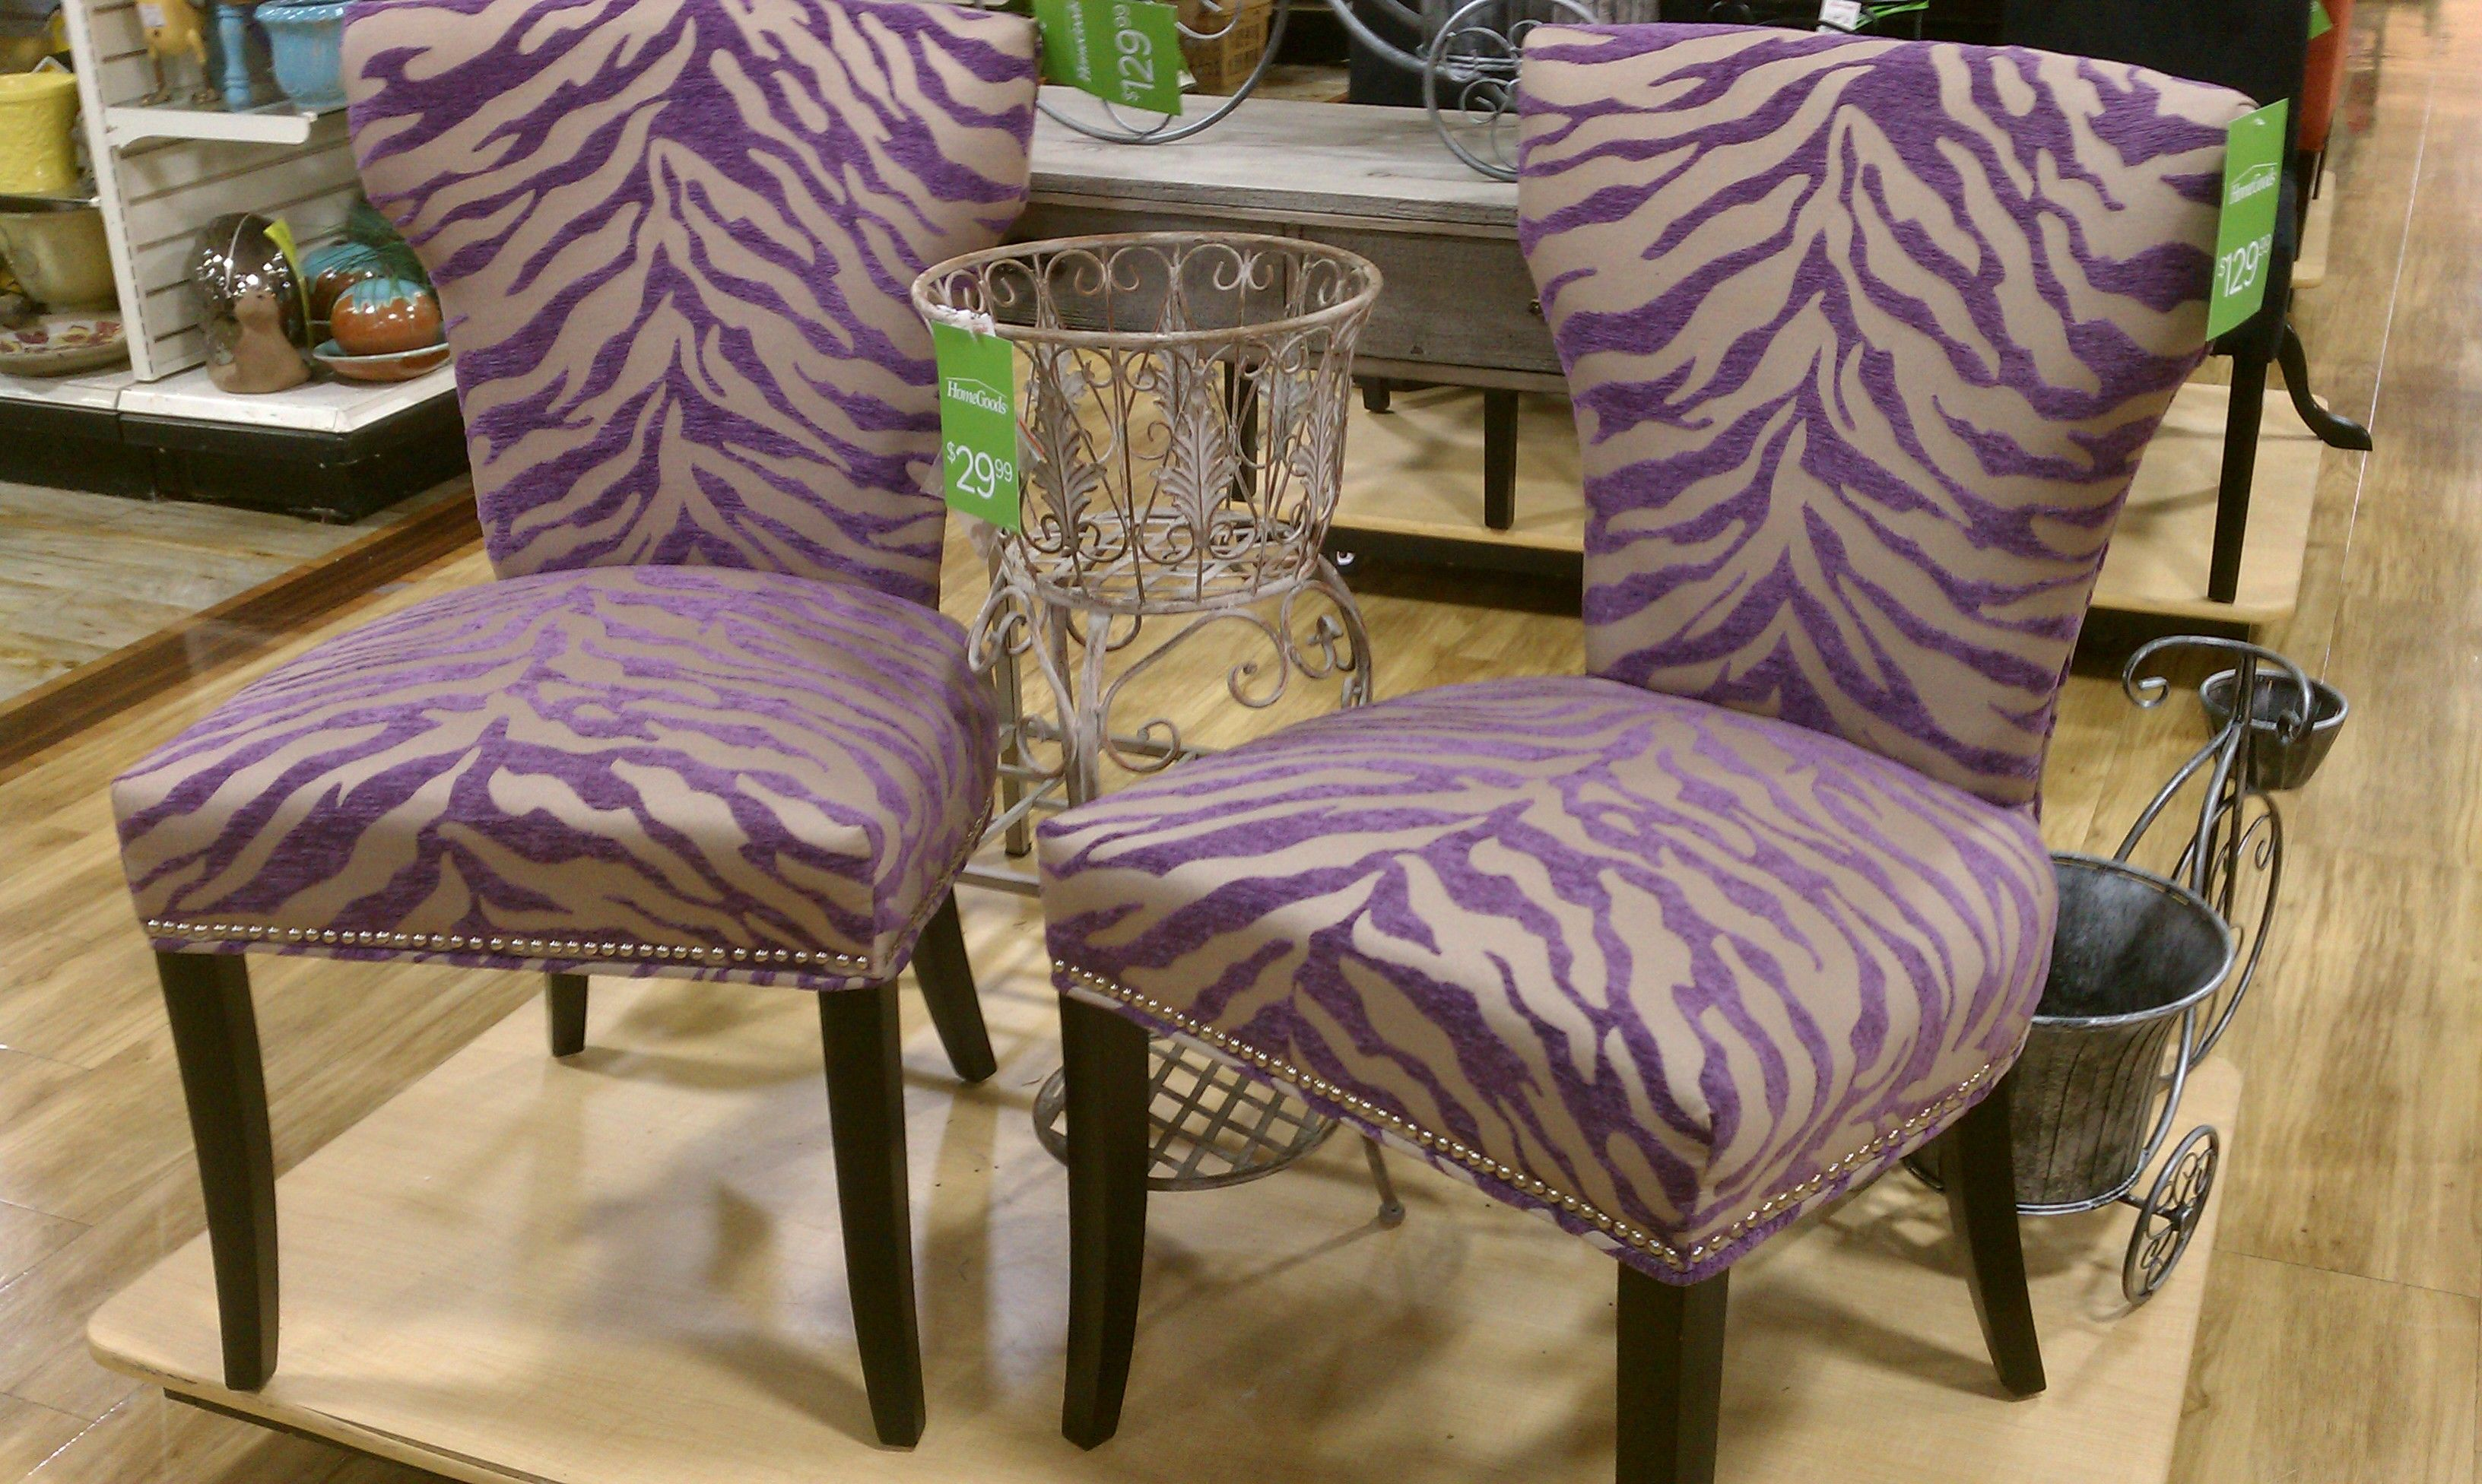 Purple Dining Room Chairs Zebra Print Chairs Home Goods Funky Chairs Chair